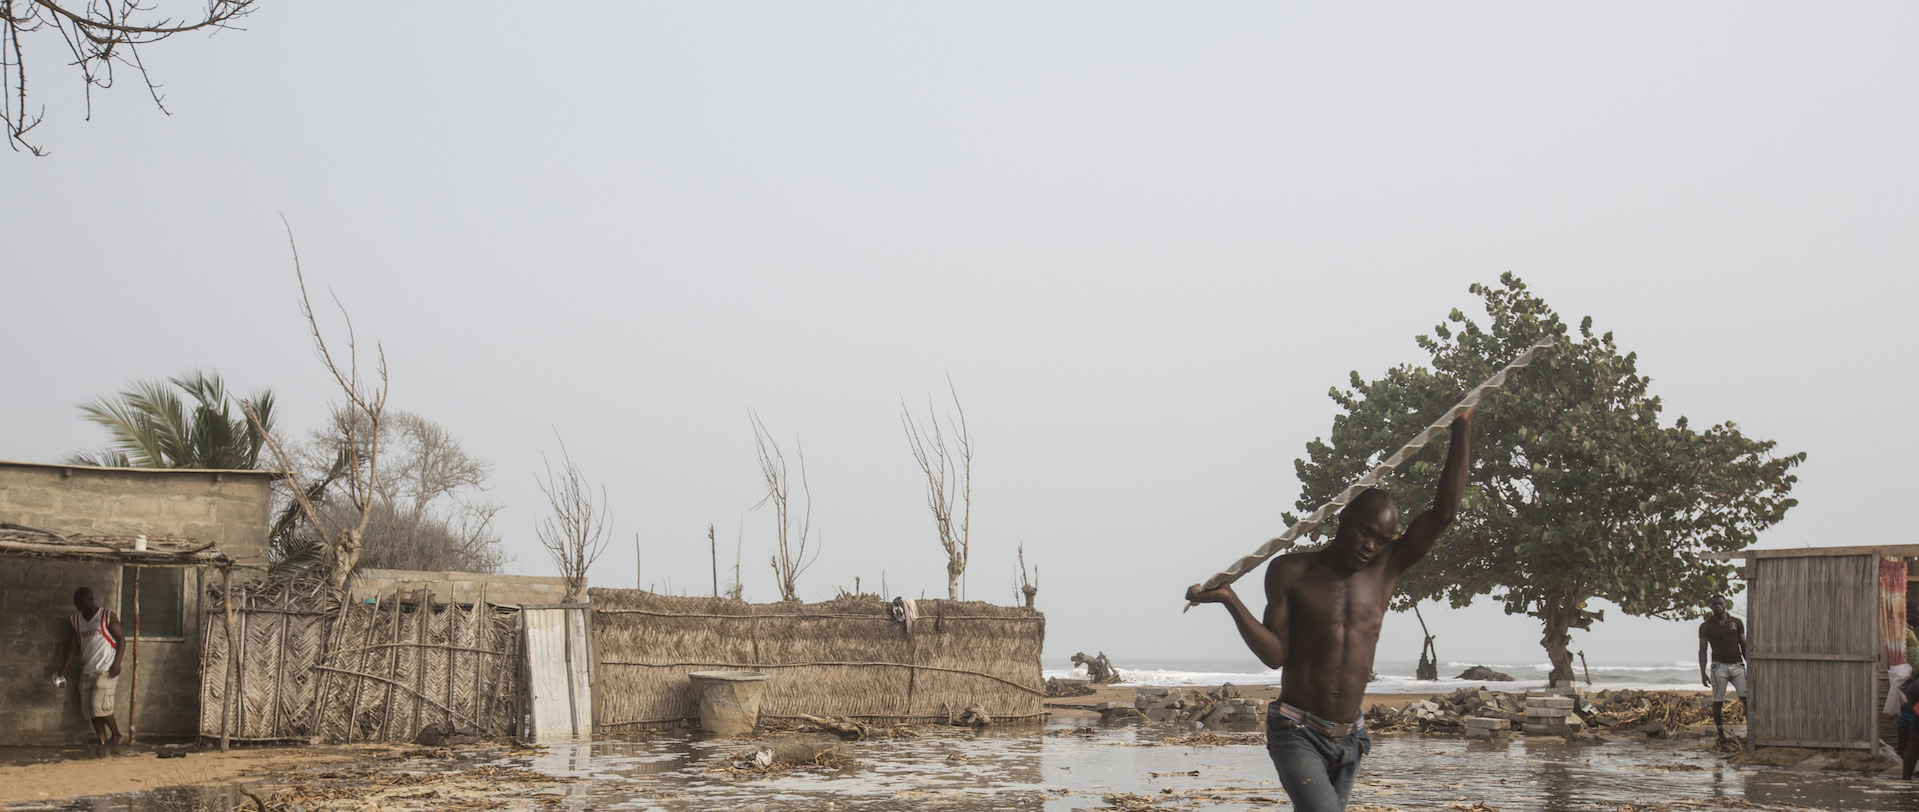 West Africa Is Being Swallowed by the Sea – Foreign Policy